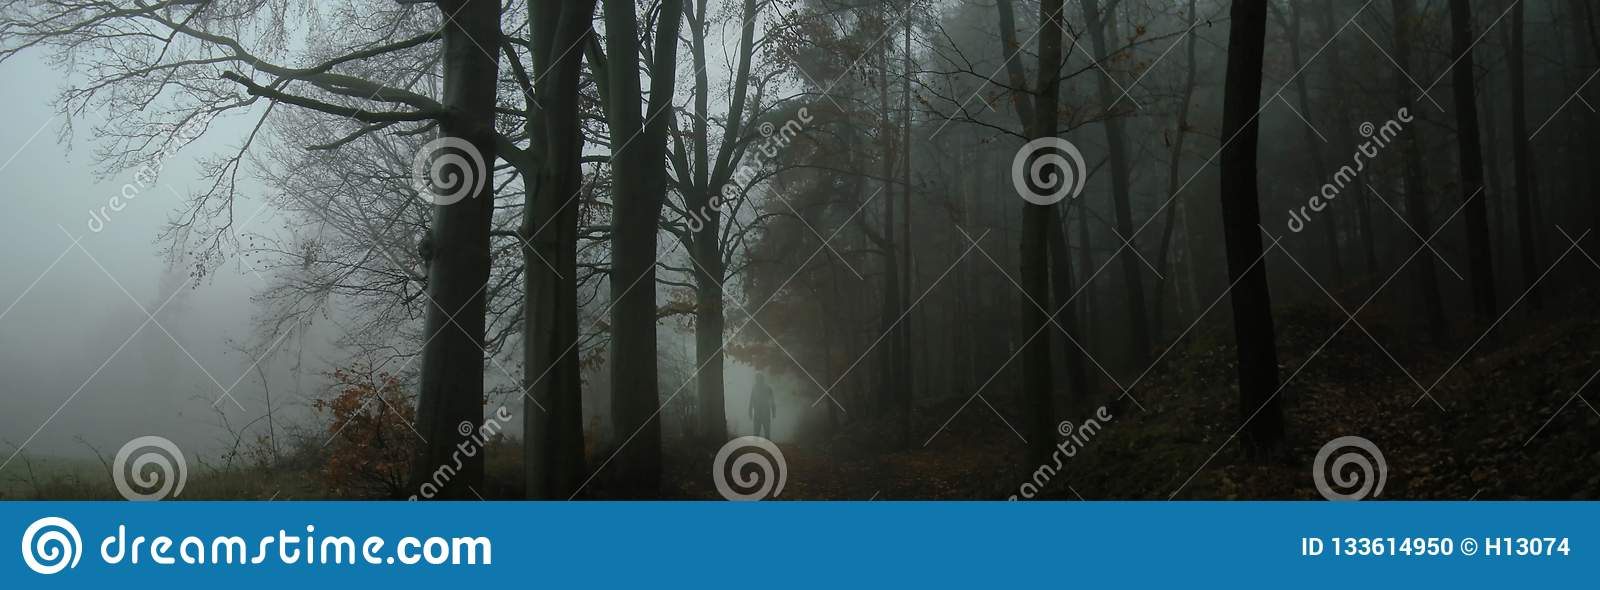 Dark Creepy Foggy Forest Stock Photo Image Of Loneliness